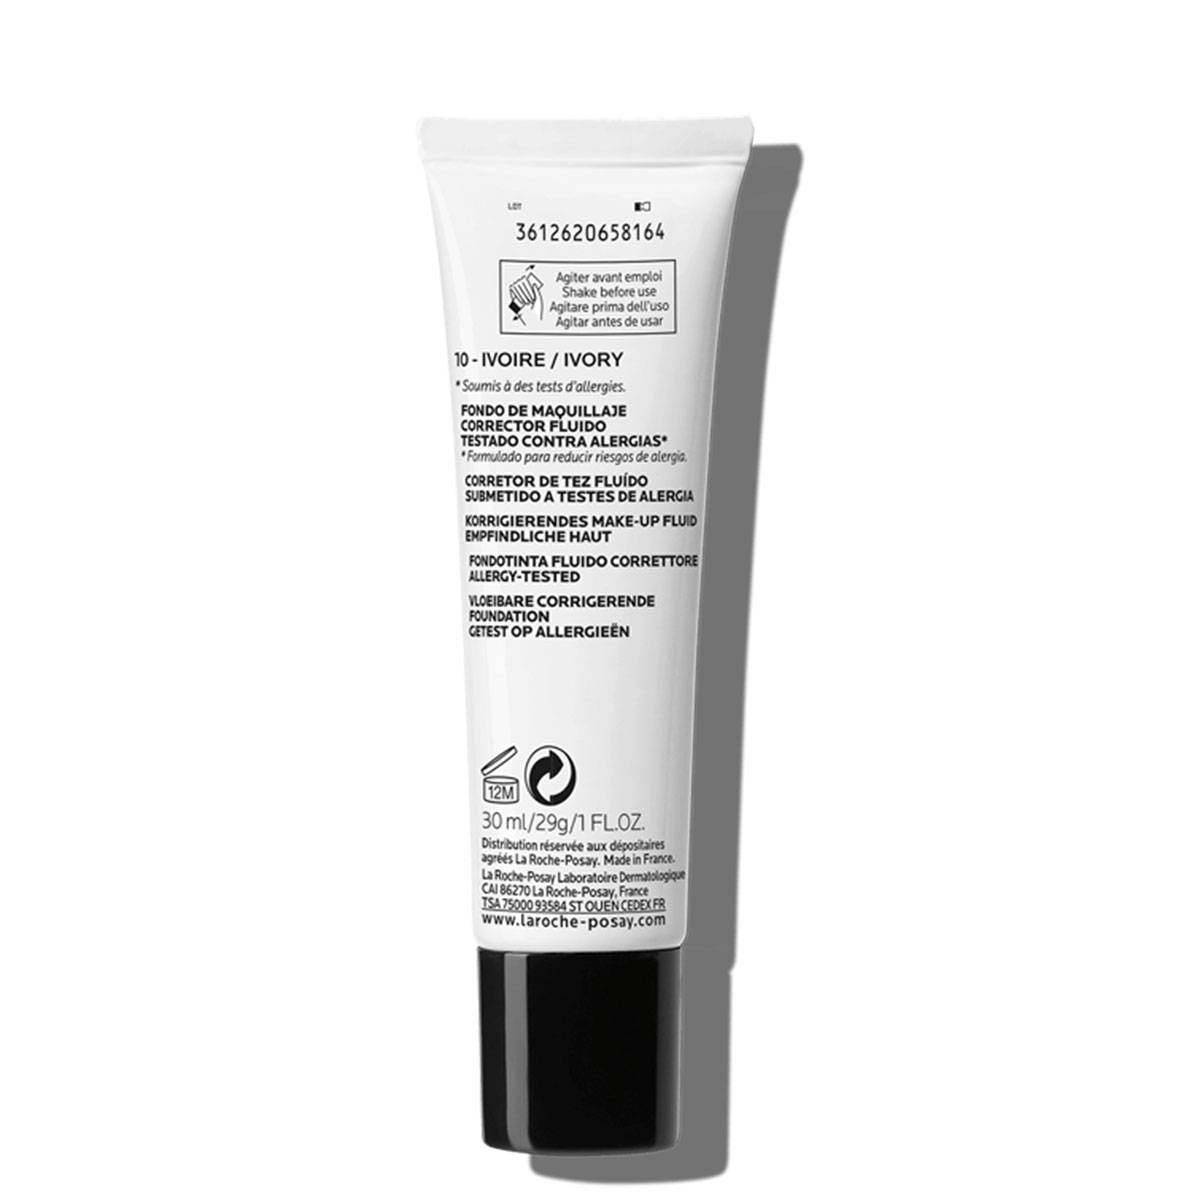 La Roche Posay Sensitive Toleriane Make up CORRECTIVE_LIQUID_FOUNDATIO